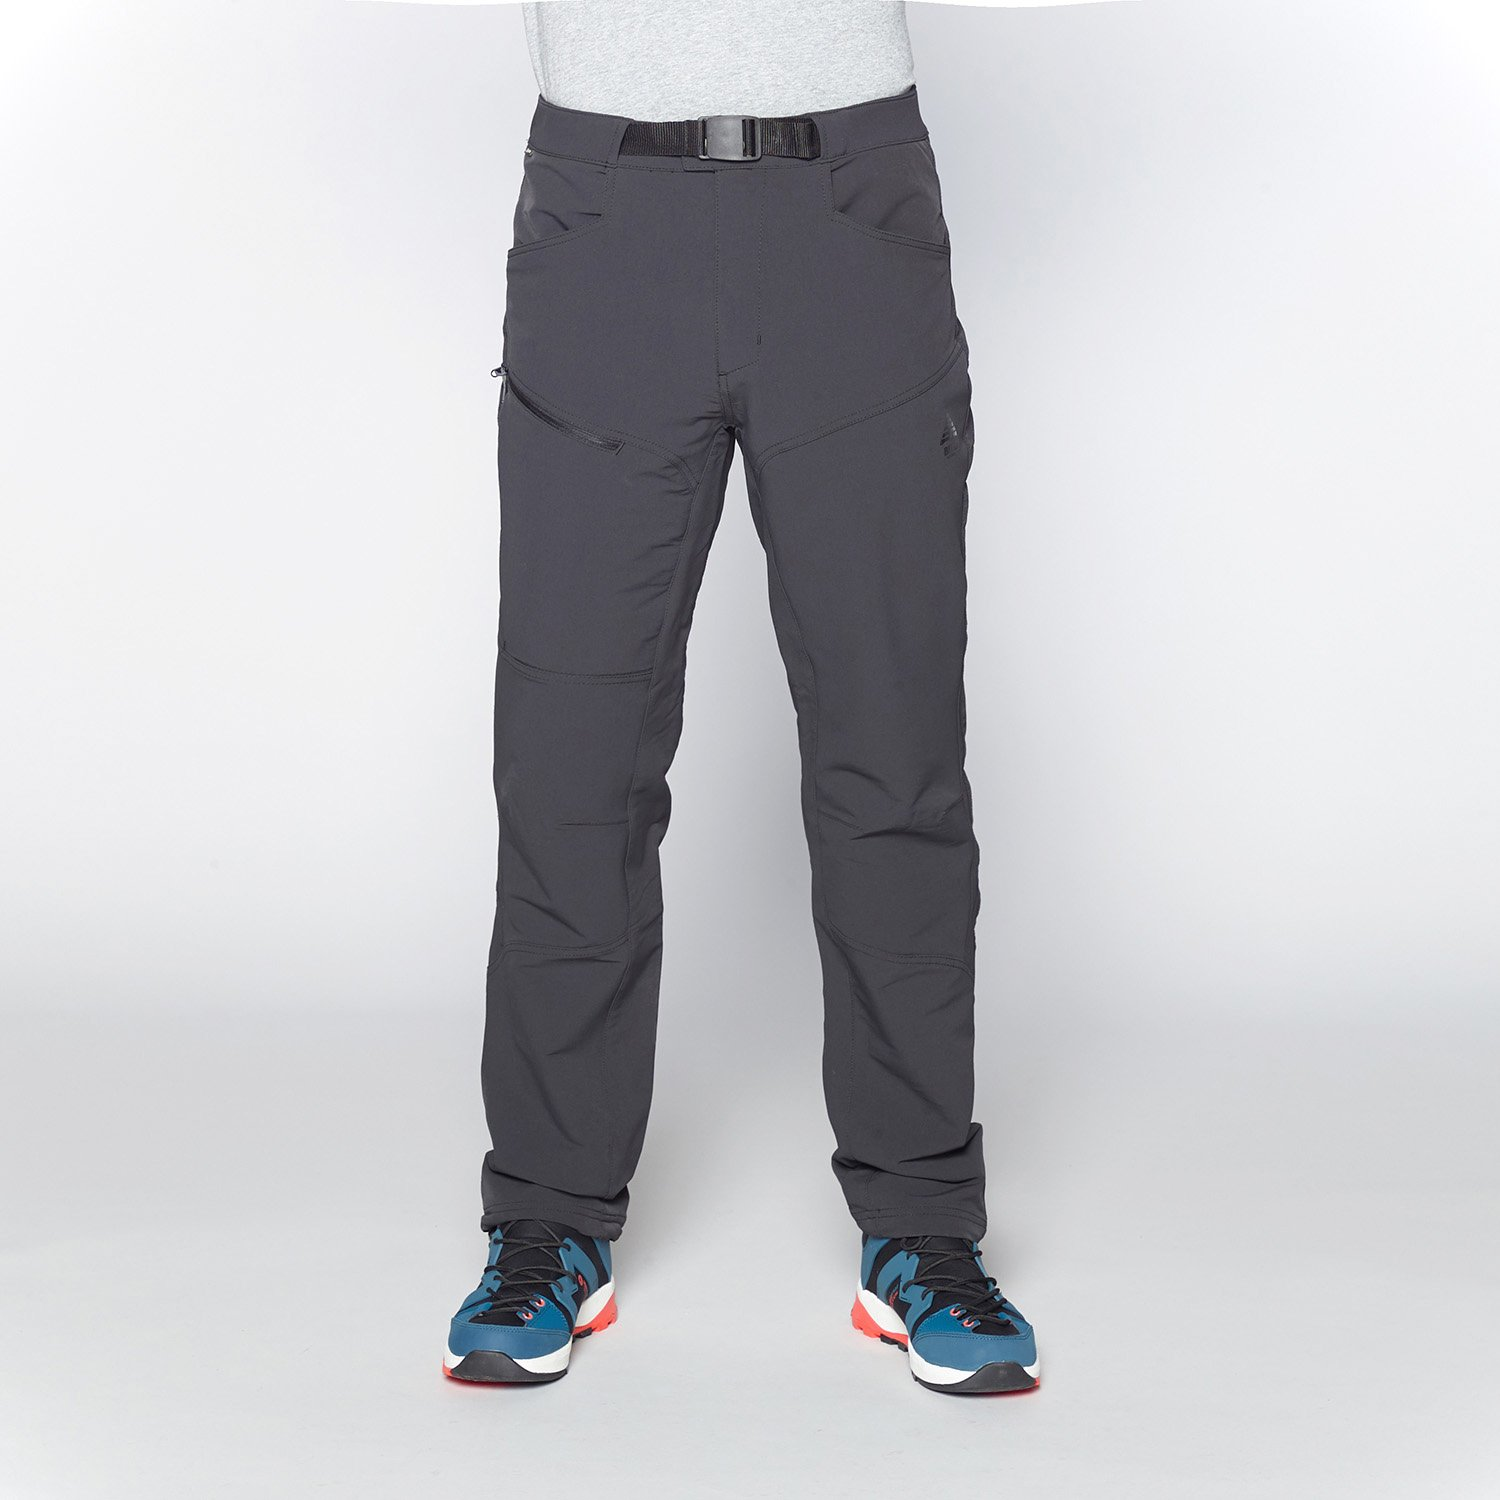 BERG OUTDOOR Herren Malpelo Pants